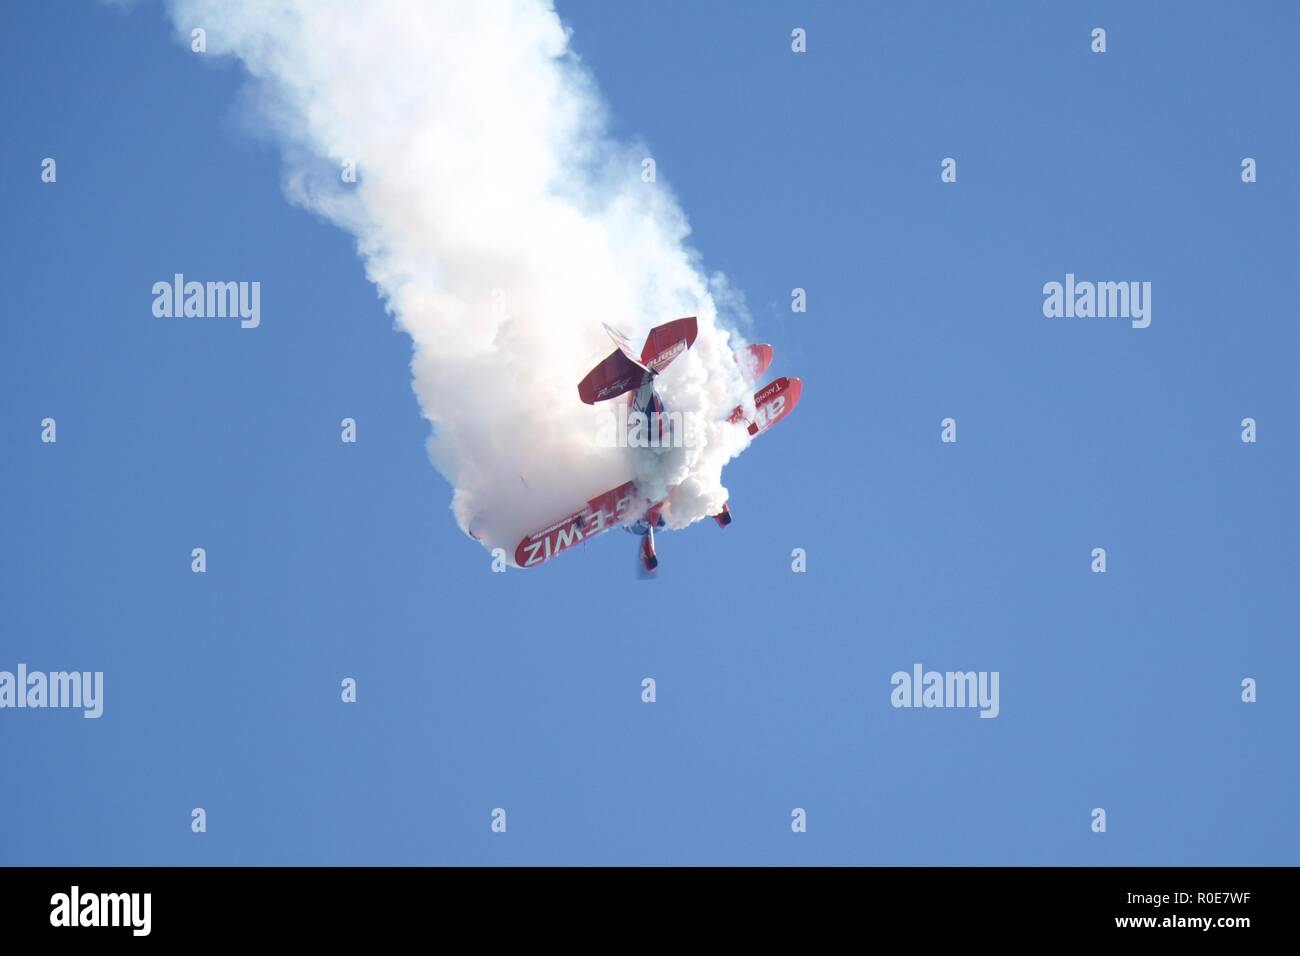 Rich Goodwin performs high energy aerobatic manoeuvres in his Super Pitts S2S (G-EWIZ) Muscle biplane at the 2018 Bournemouth Air Festival - Stock Image